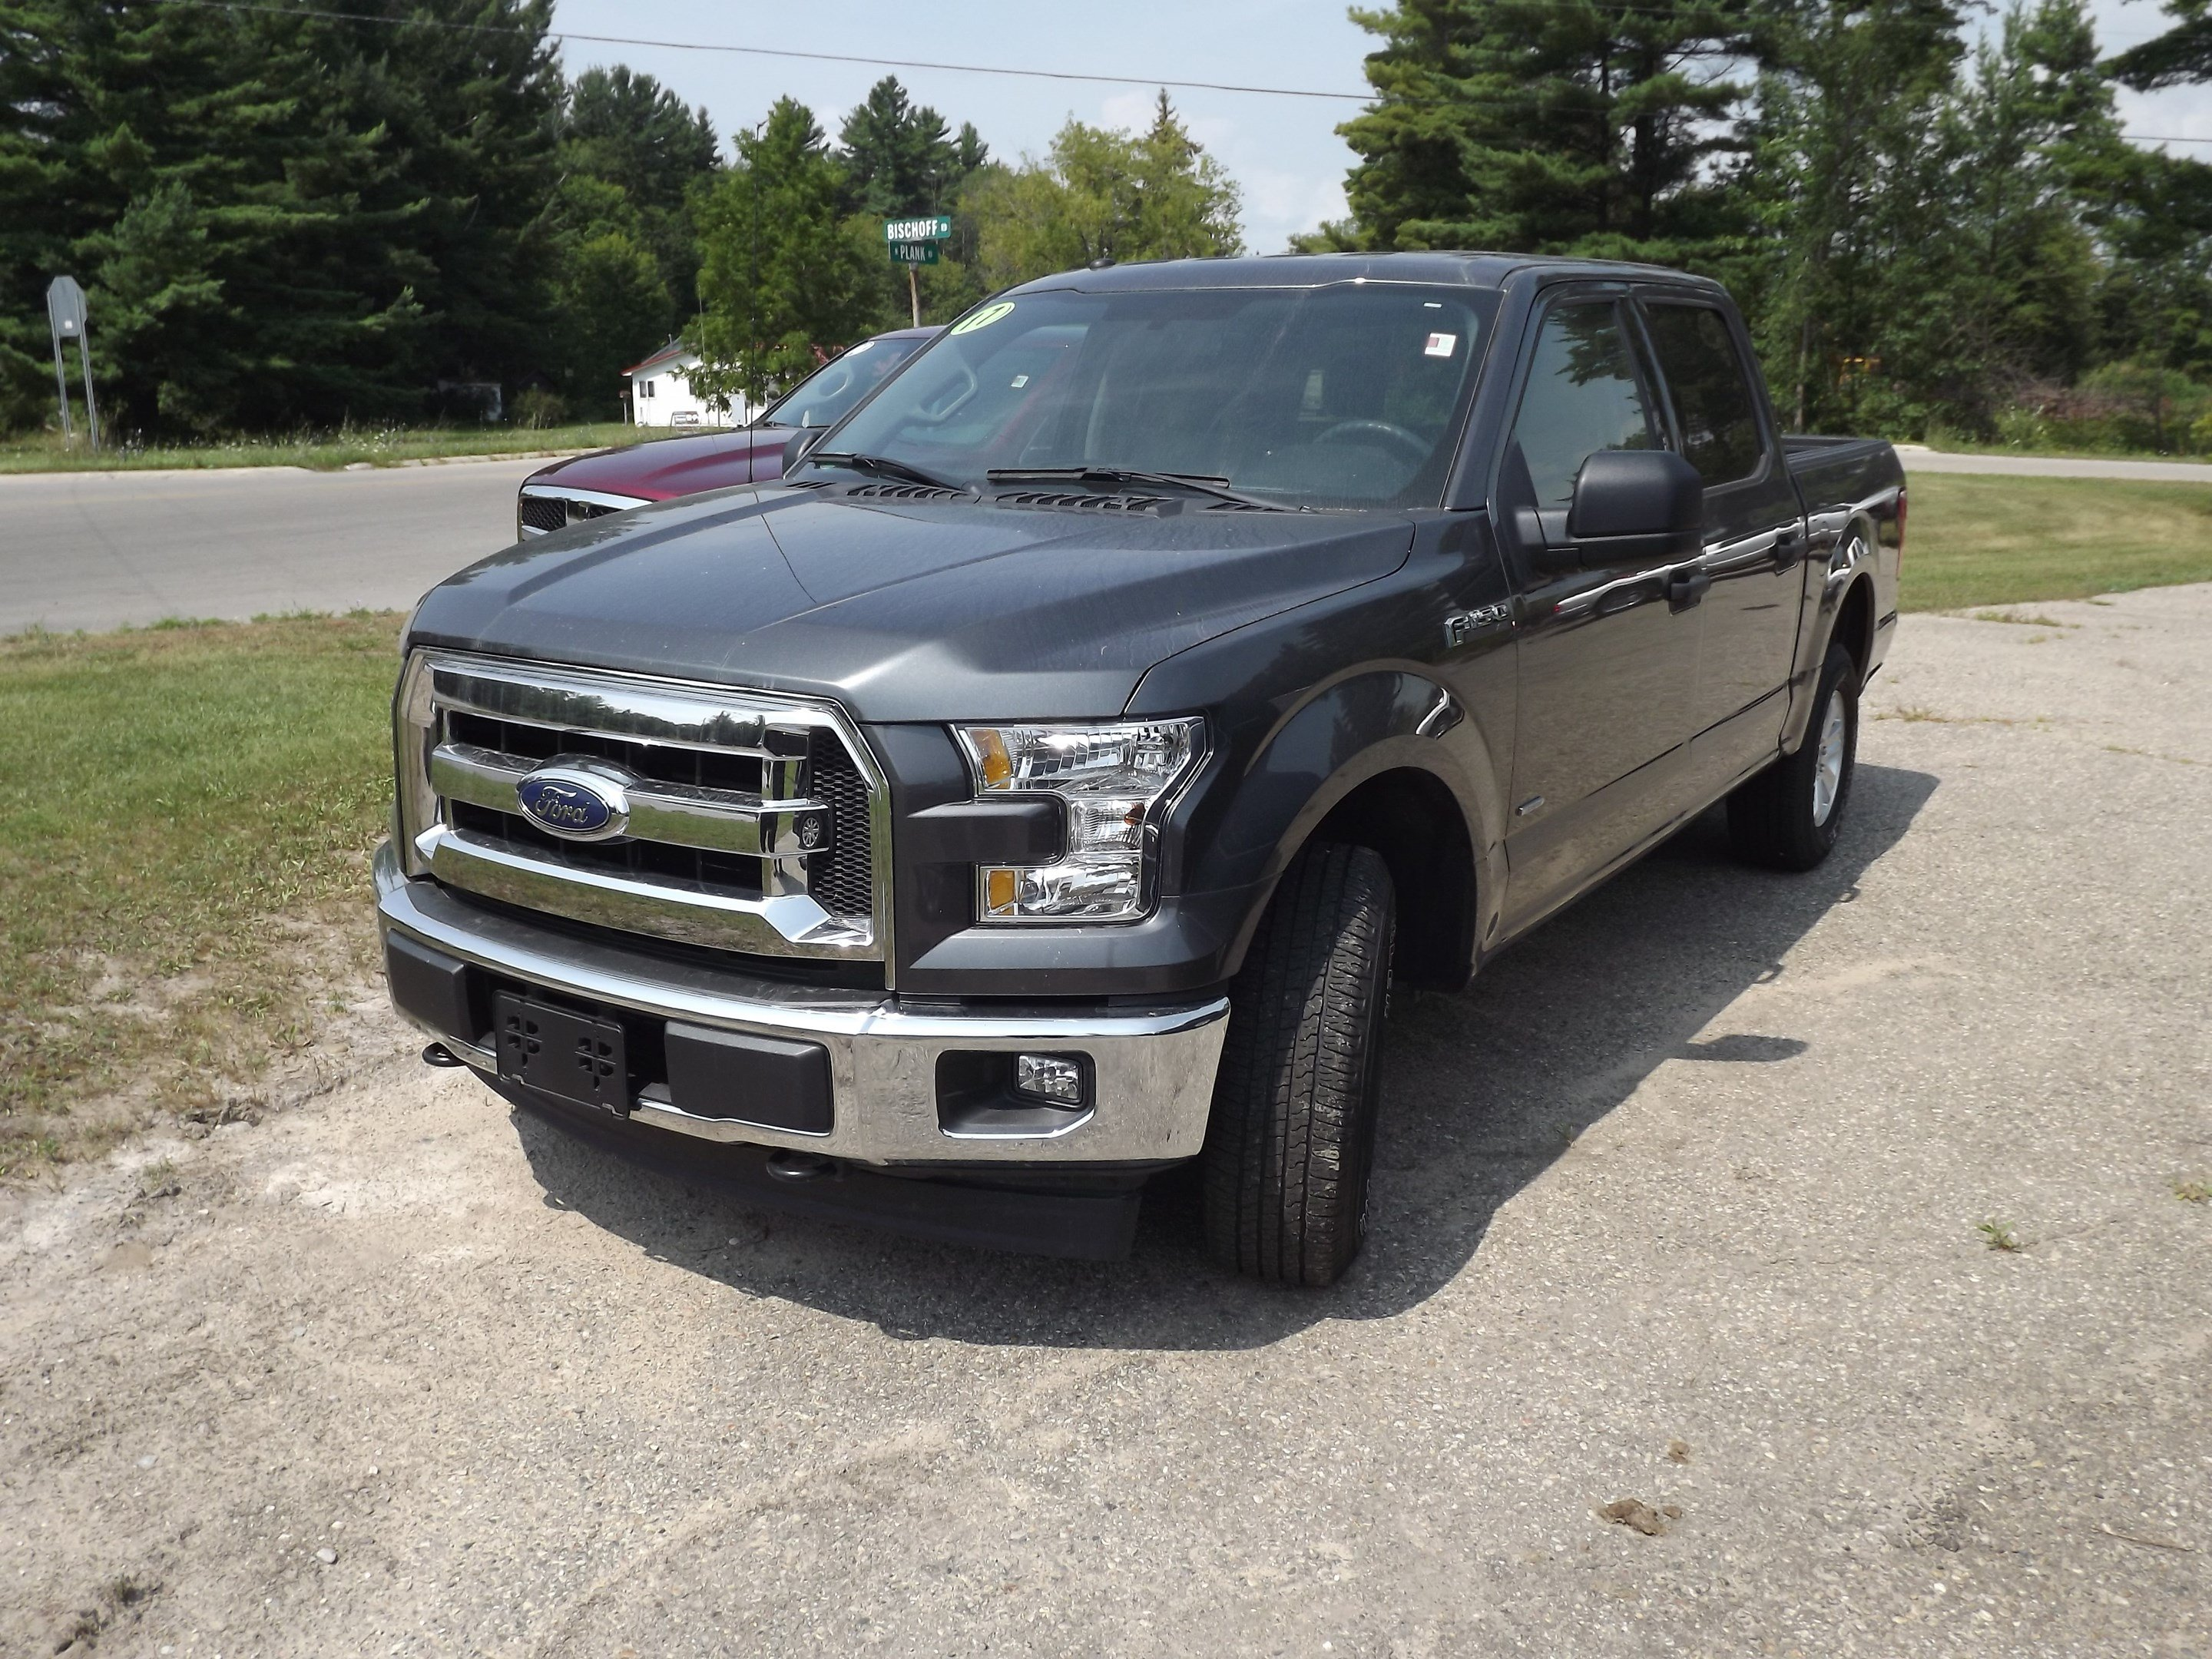 Cars for Sale Under 10000 In Michigan Luxury Find Used Cars for Sale In East Tawas Michigan Pre Owned Cars